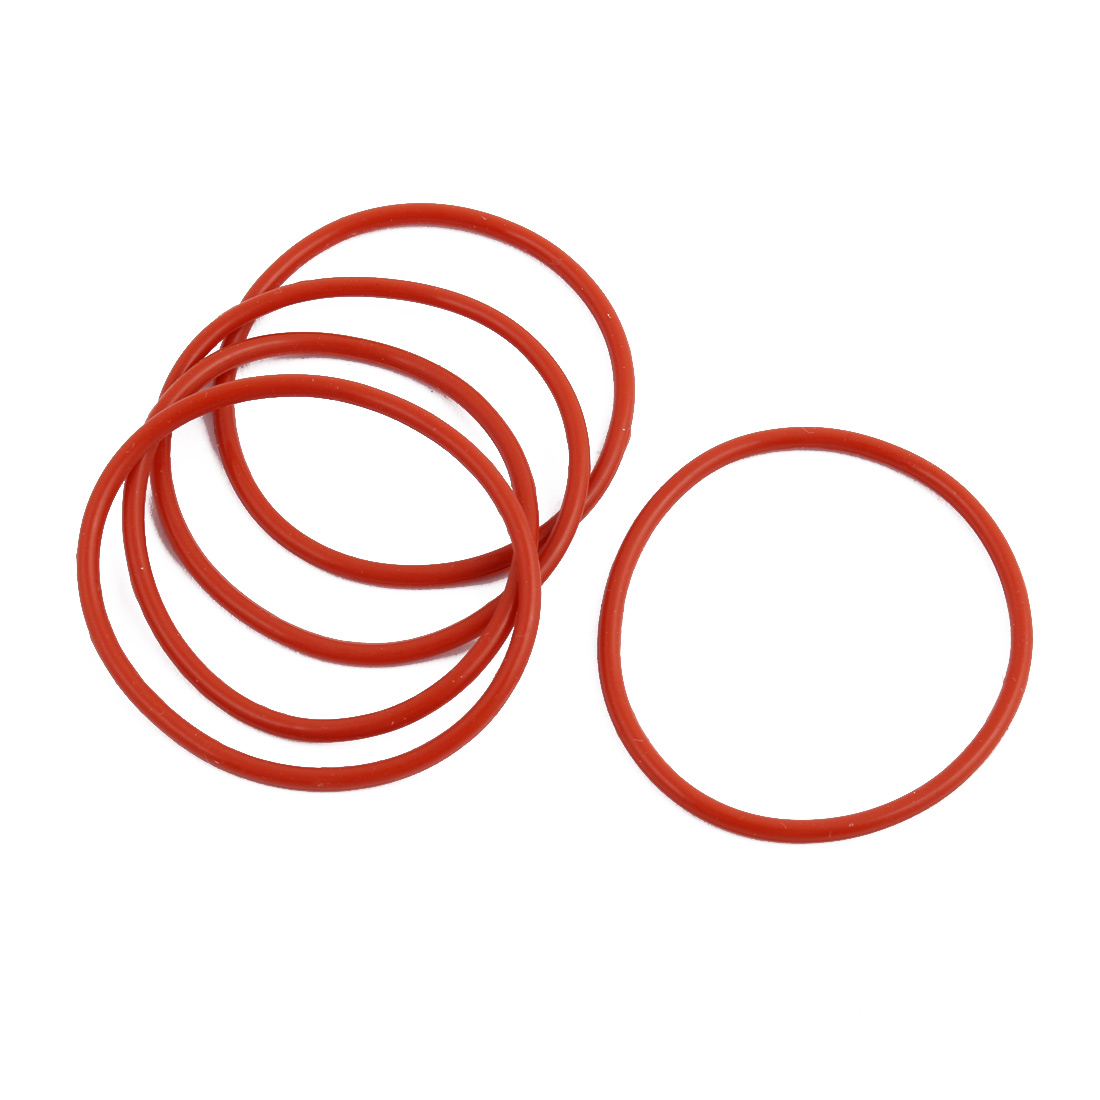 5pcs Red Round Nitrile Butadiene Rubber NBR O-Ring 40mm OD 1.9mm Width